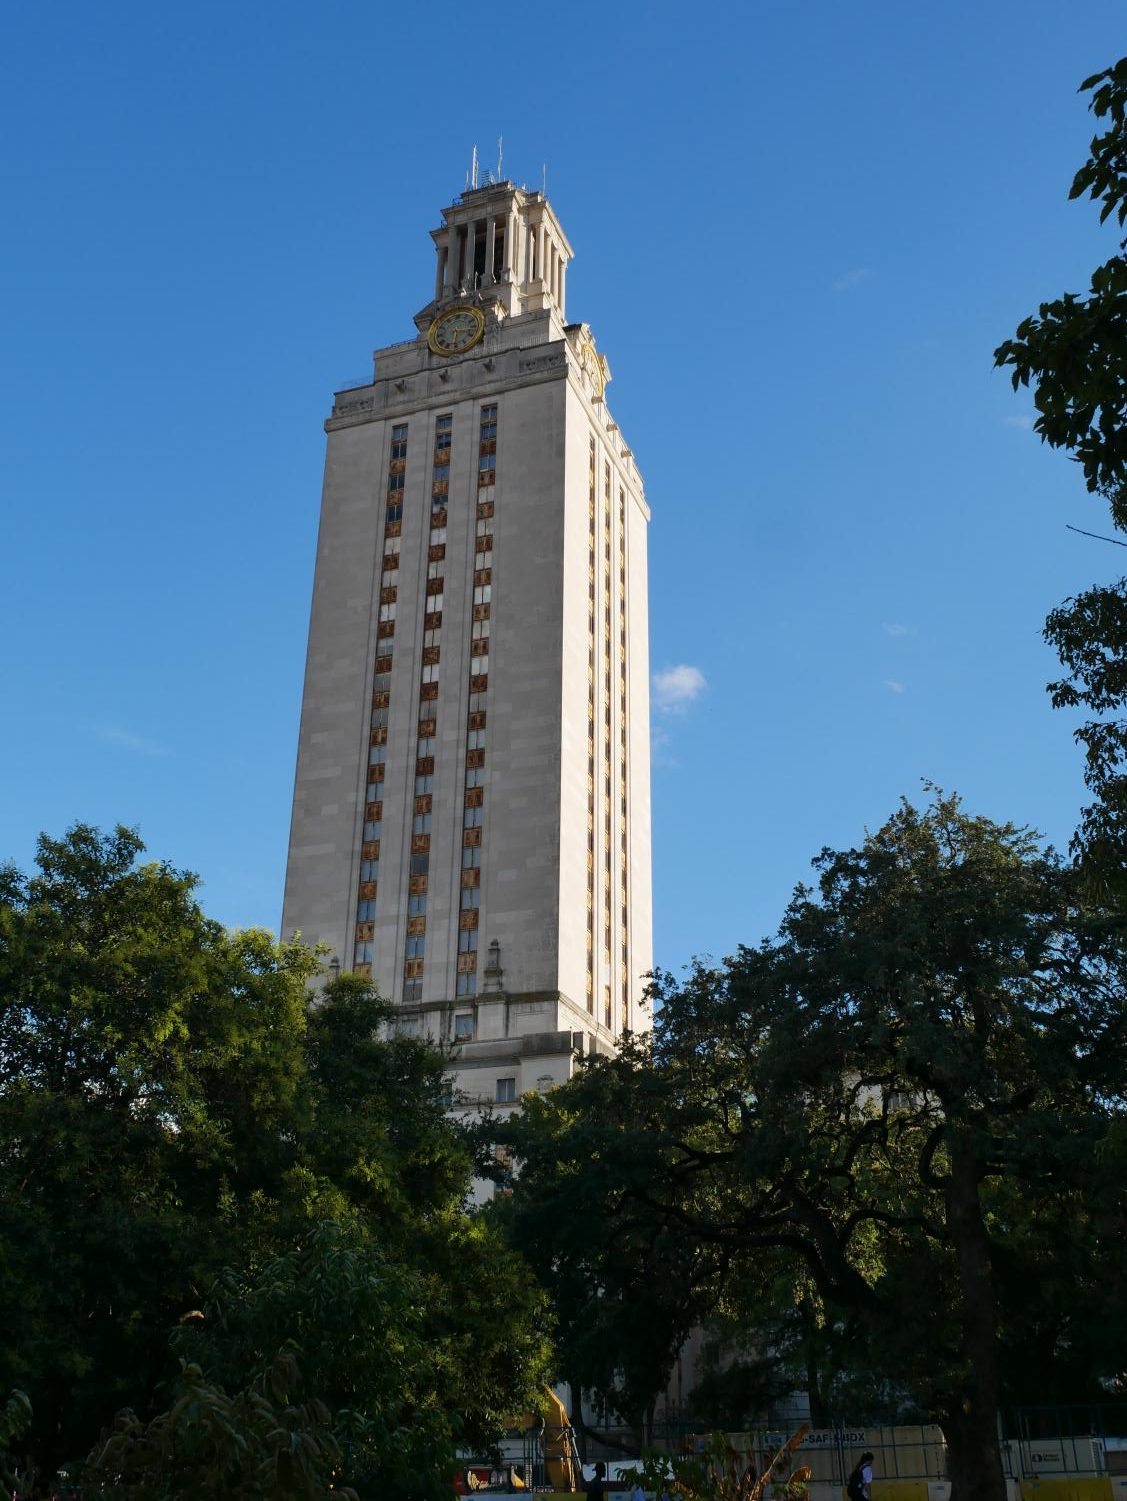 The view of the UT tower from the famous turtle pond.